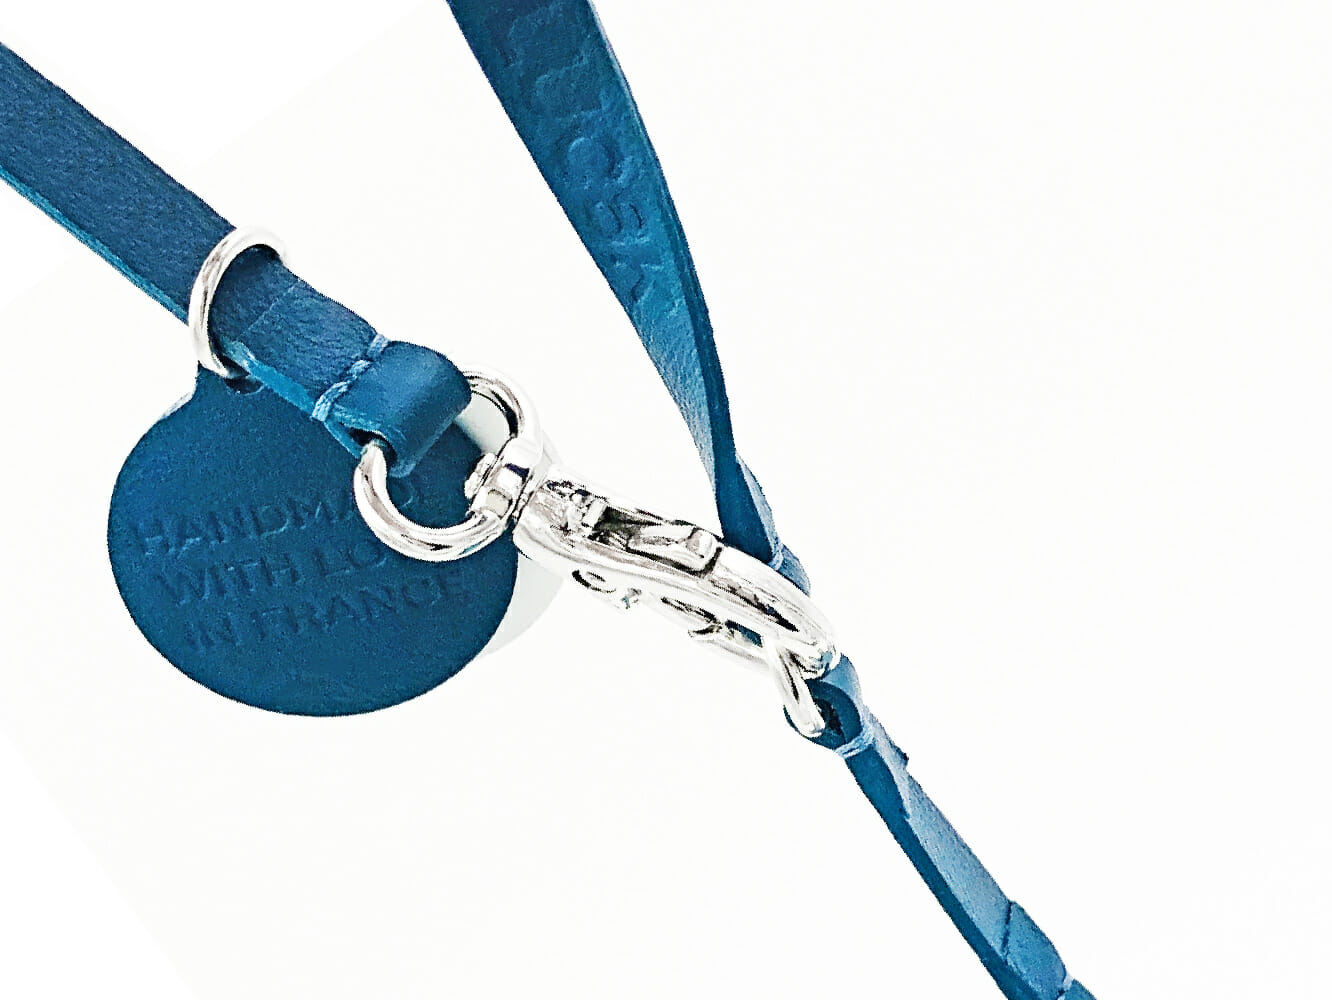 Detail of the lock from the charm with blue leather straps